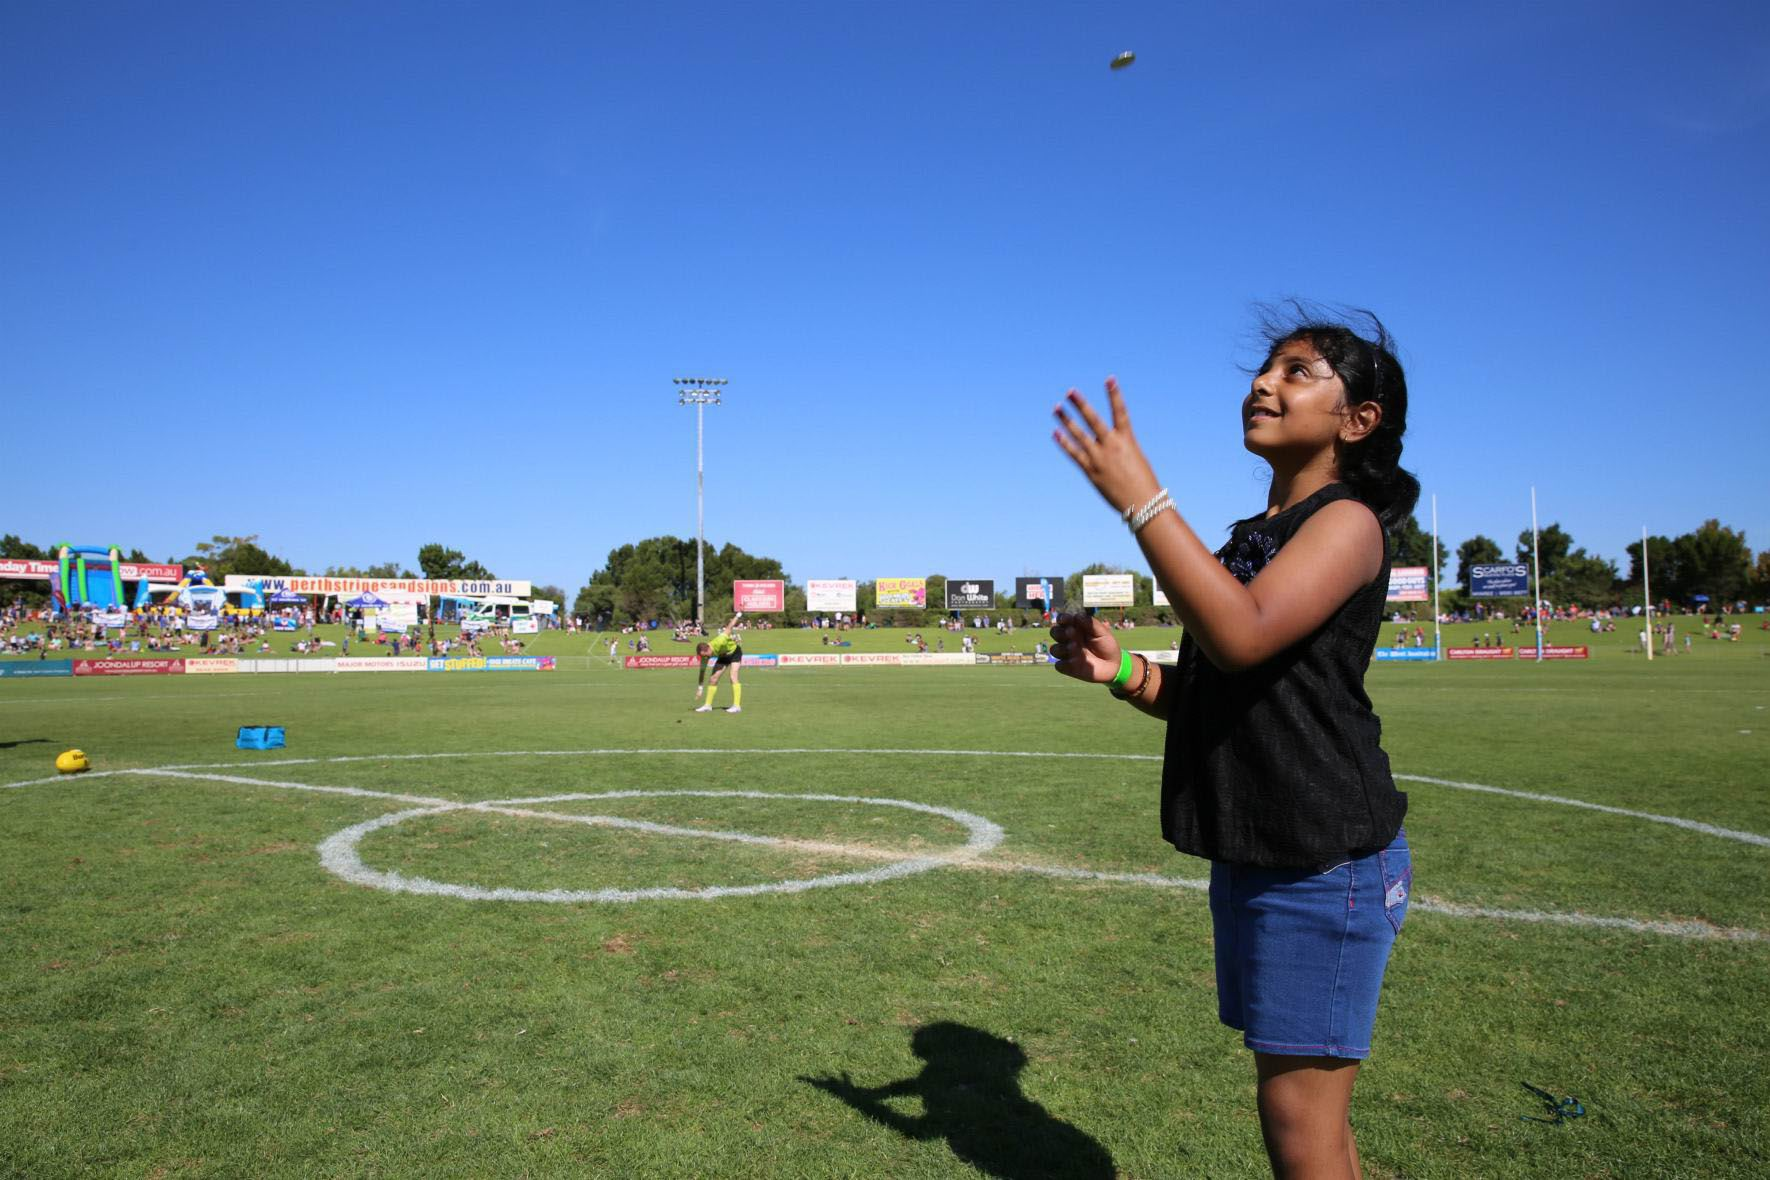 Indian migrant Evana George tosses the coin before the match after becoming an Australian citizen. Picture: Chris Kershaw